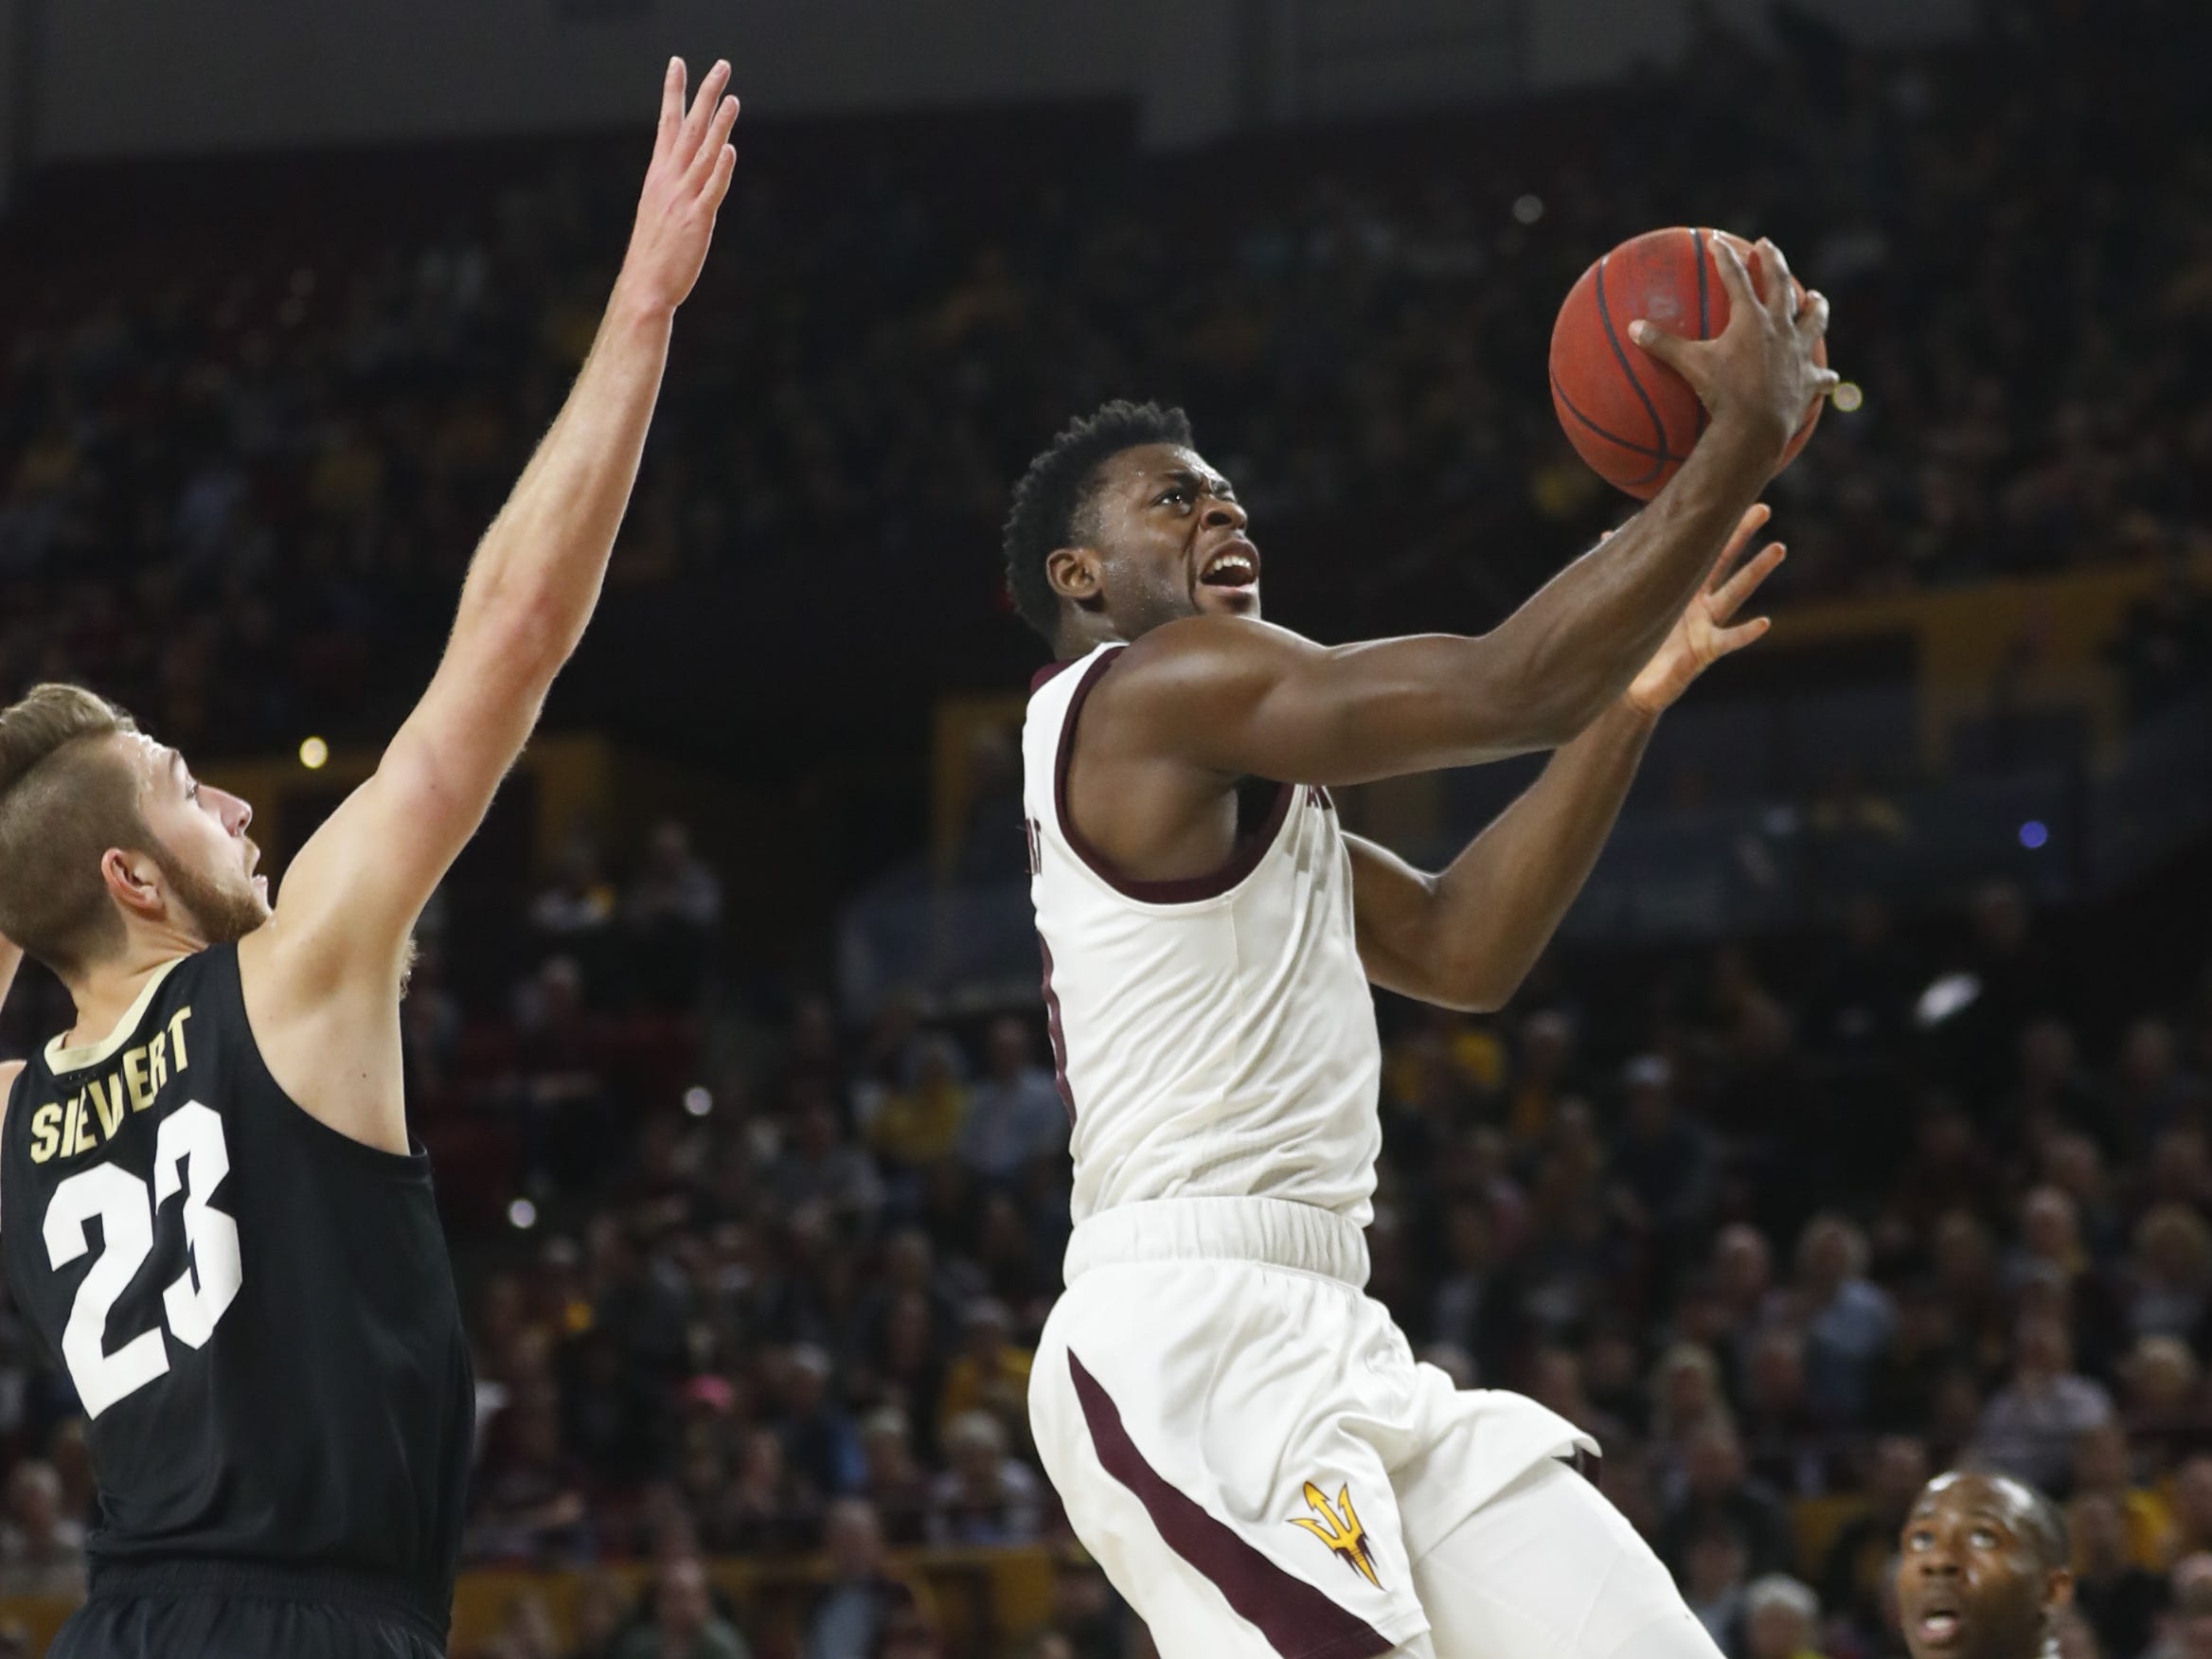 ASU's Luguentz Dort (0) makes a layup against Colorado's Lucas Siewert (23) during the first half at Wells Fargo Arena in Tempe, Ariz. on January 5, 2019.